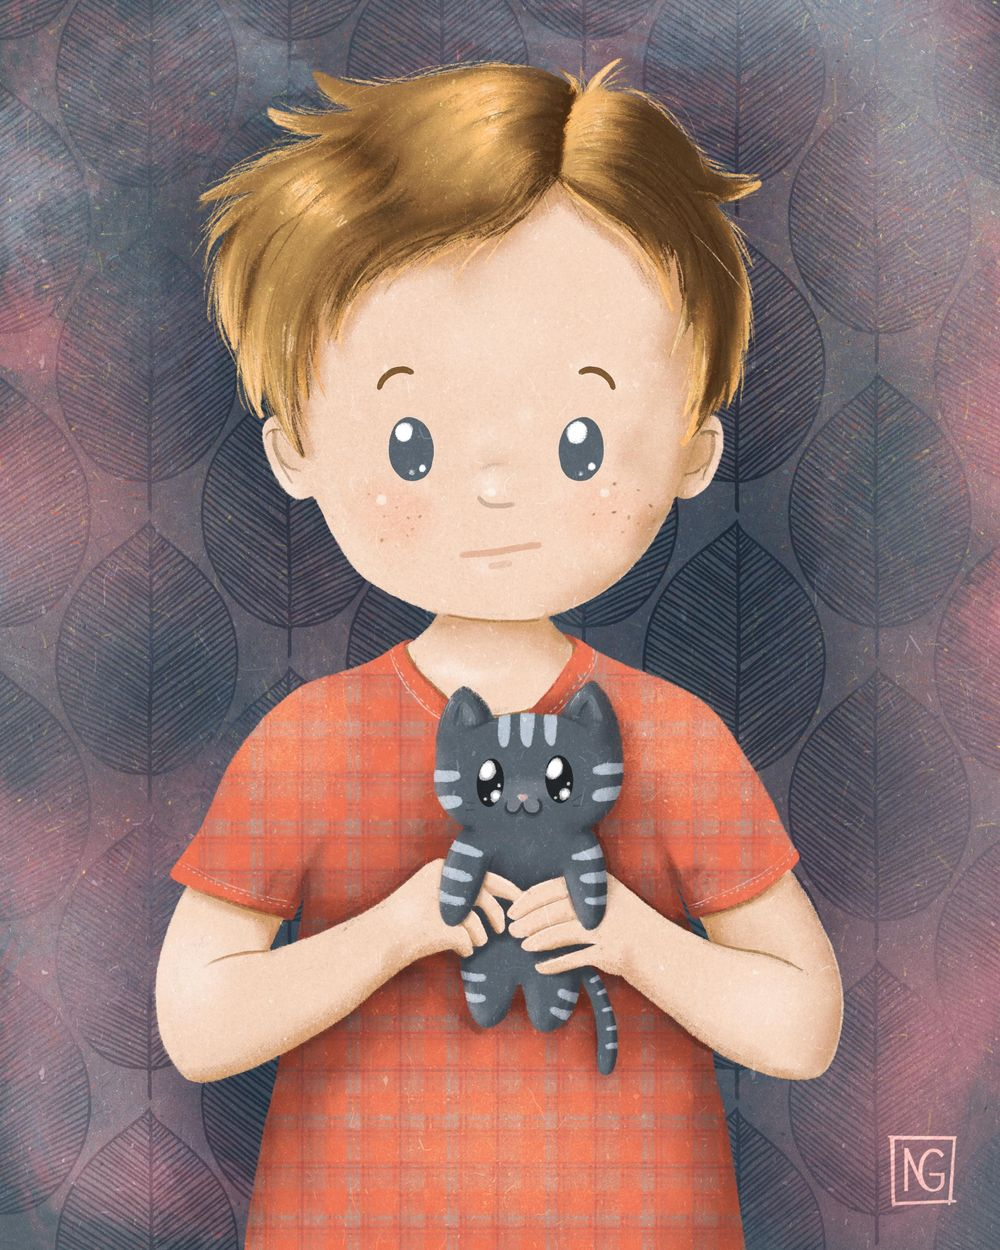 Sad boy with a kitten - image 4 - student project